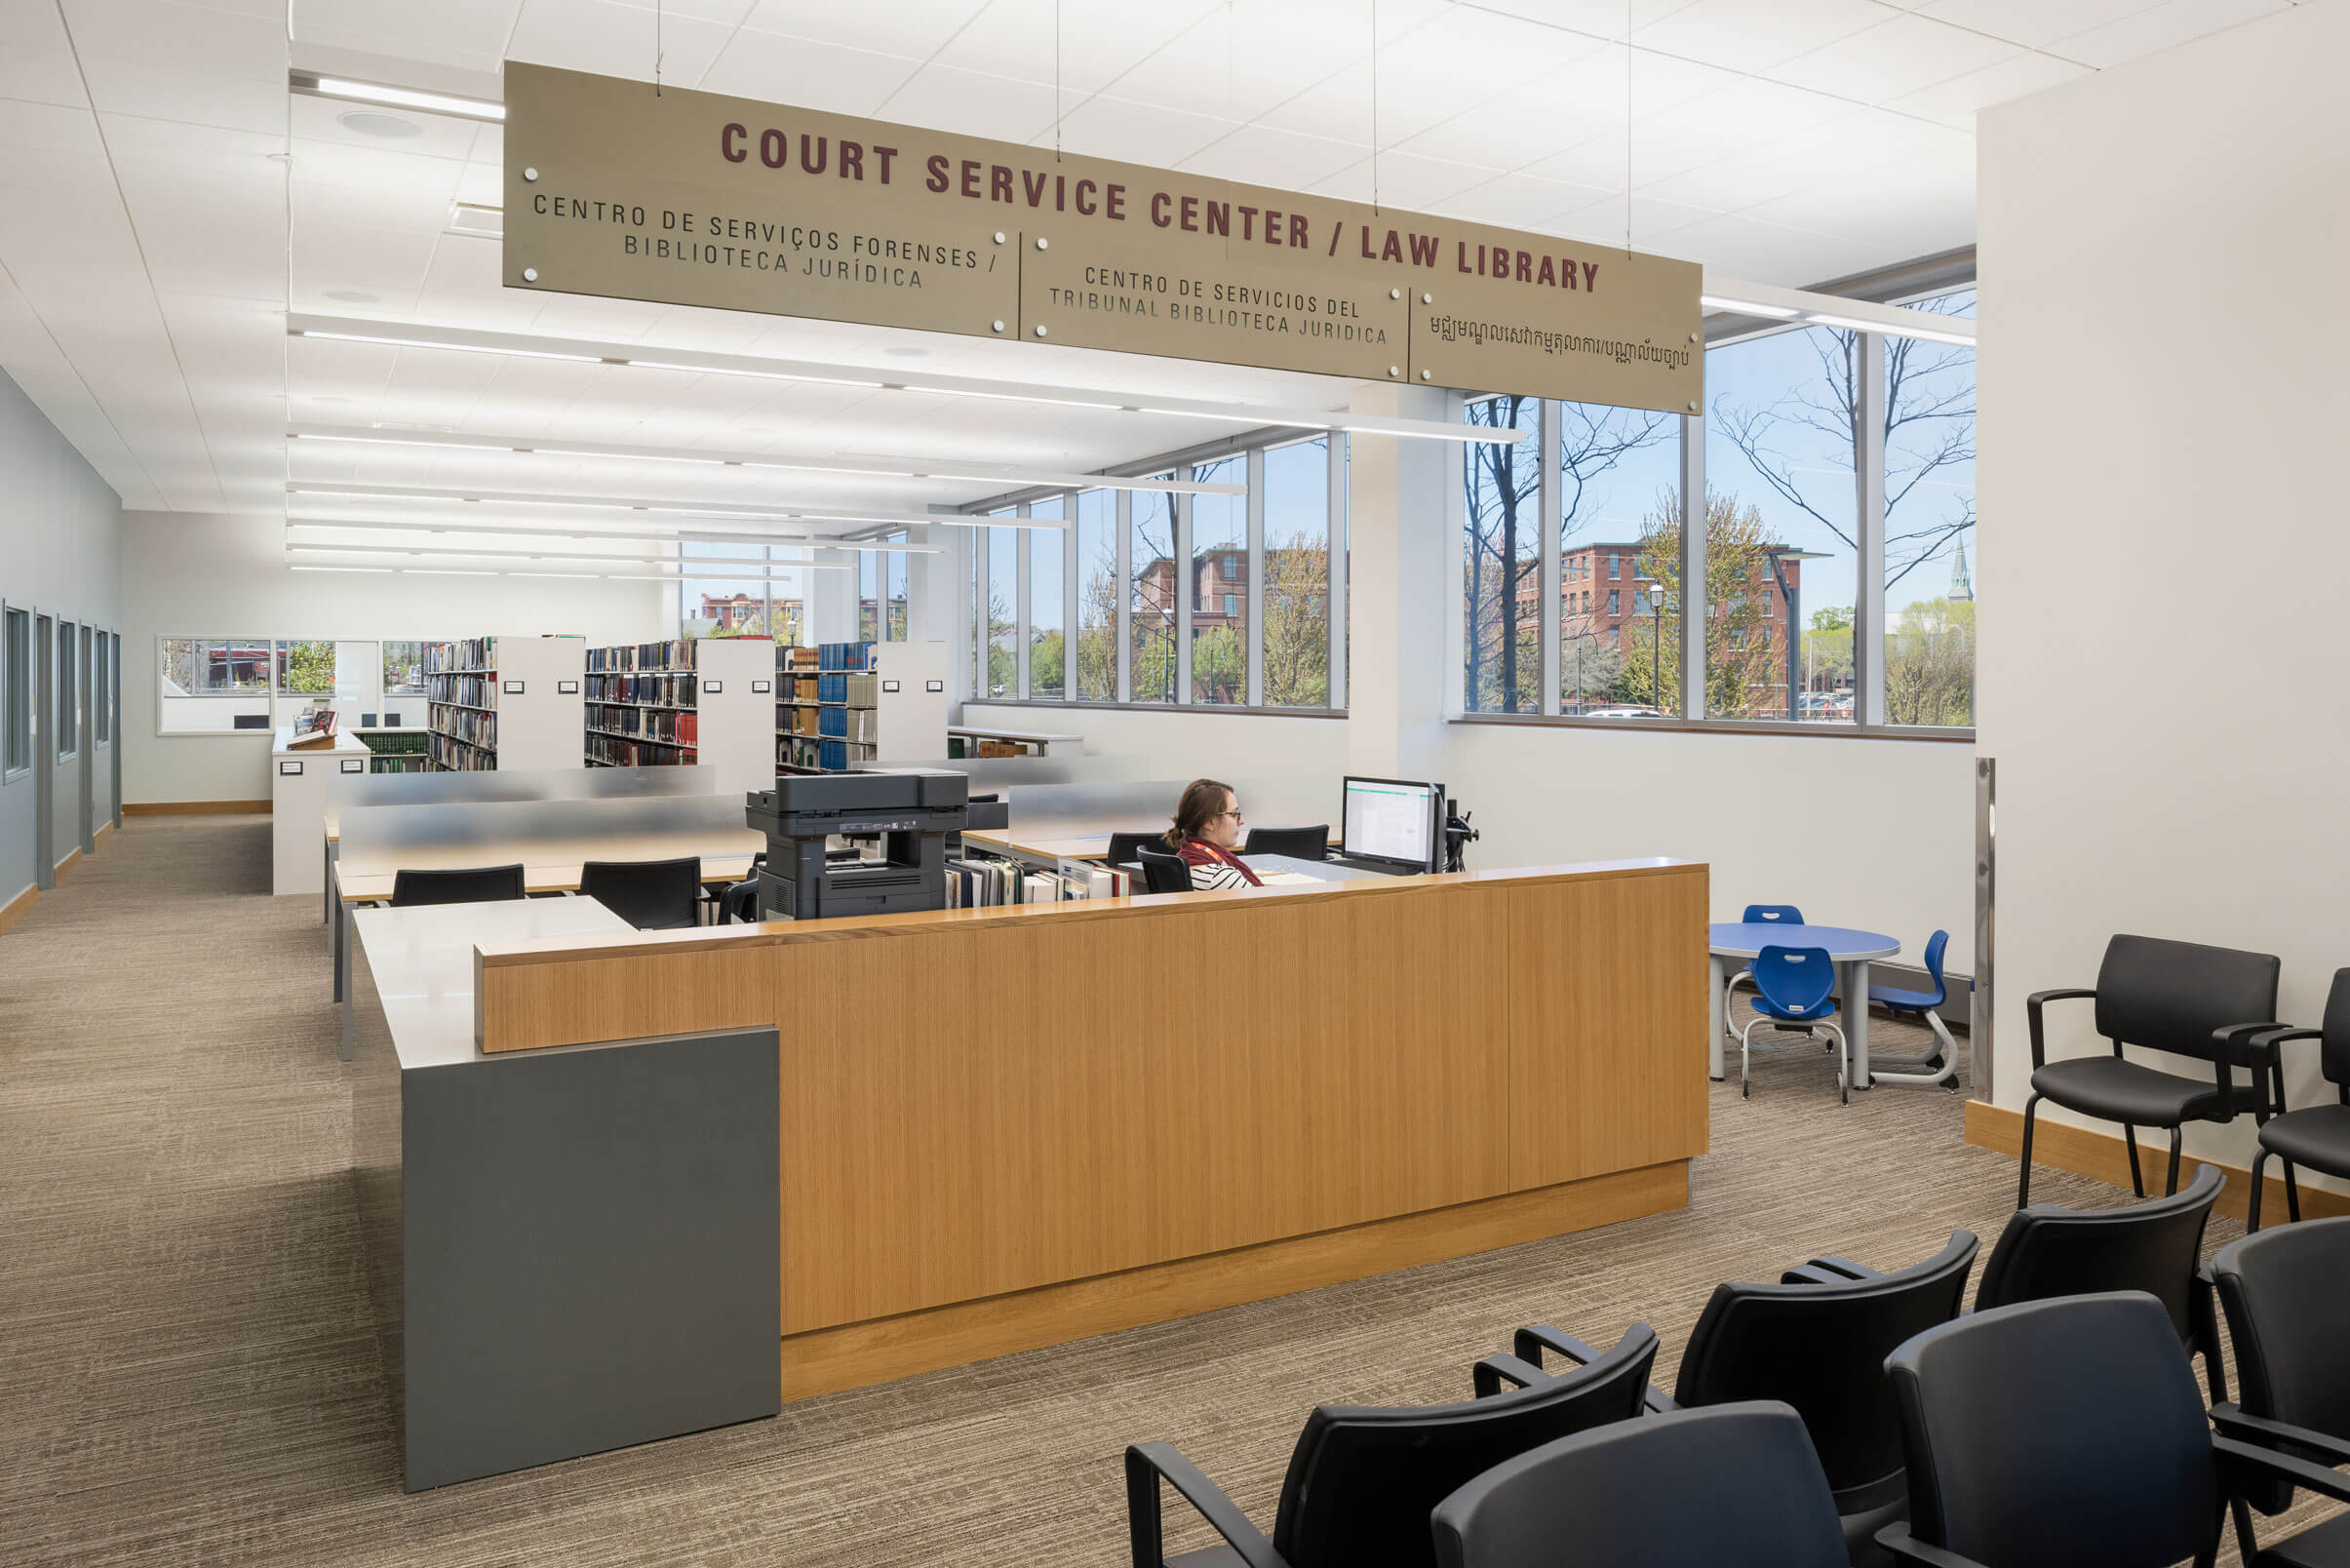 Lowell Justice Center, Court Service Center and Law Library, with a wooden service desk underneath the sign, and and brick buildings visible through the windows.